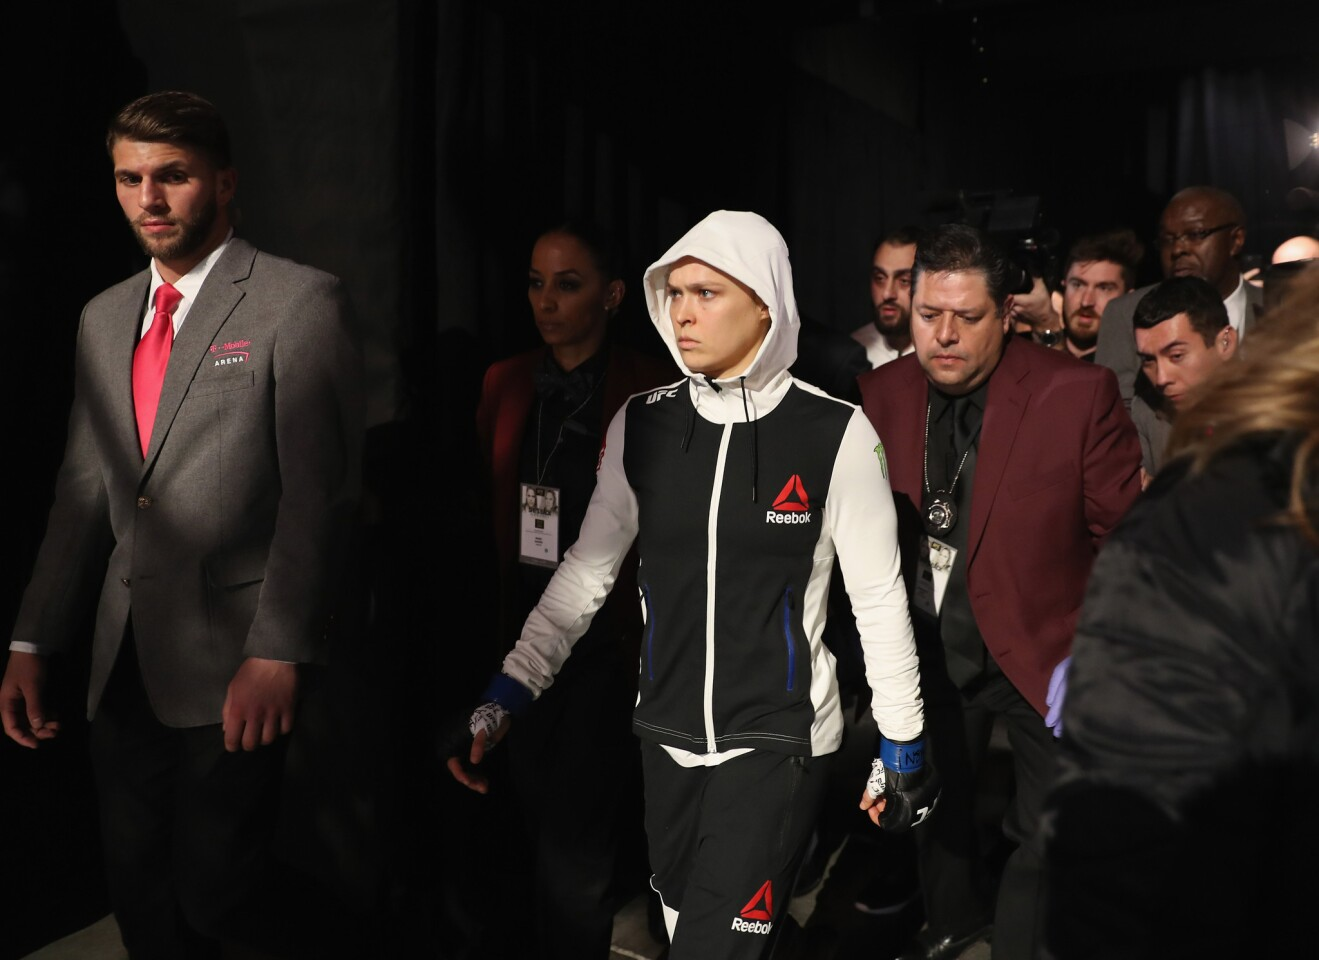 Ronda Rousey walks to the octagon to face Amanda Nunes for the women's bantamweight championship bout at UFC 207.